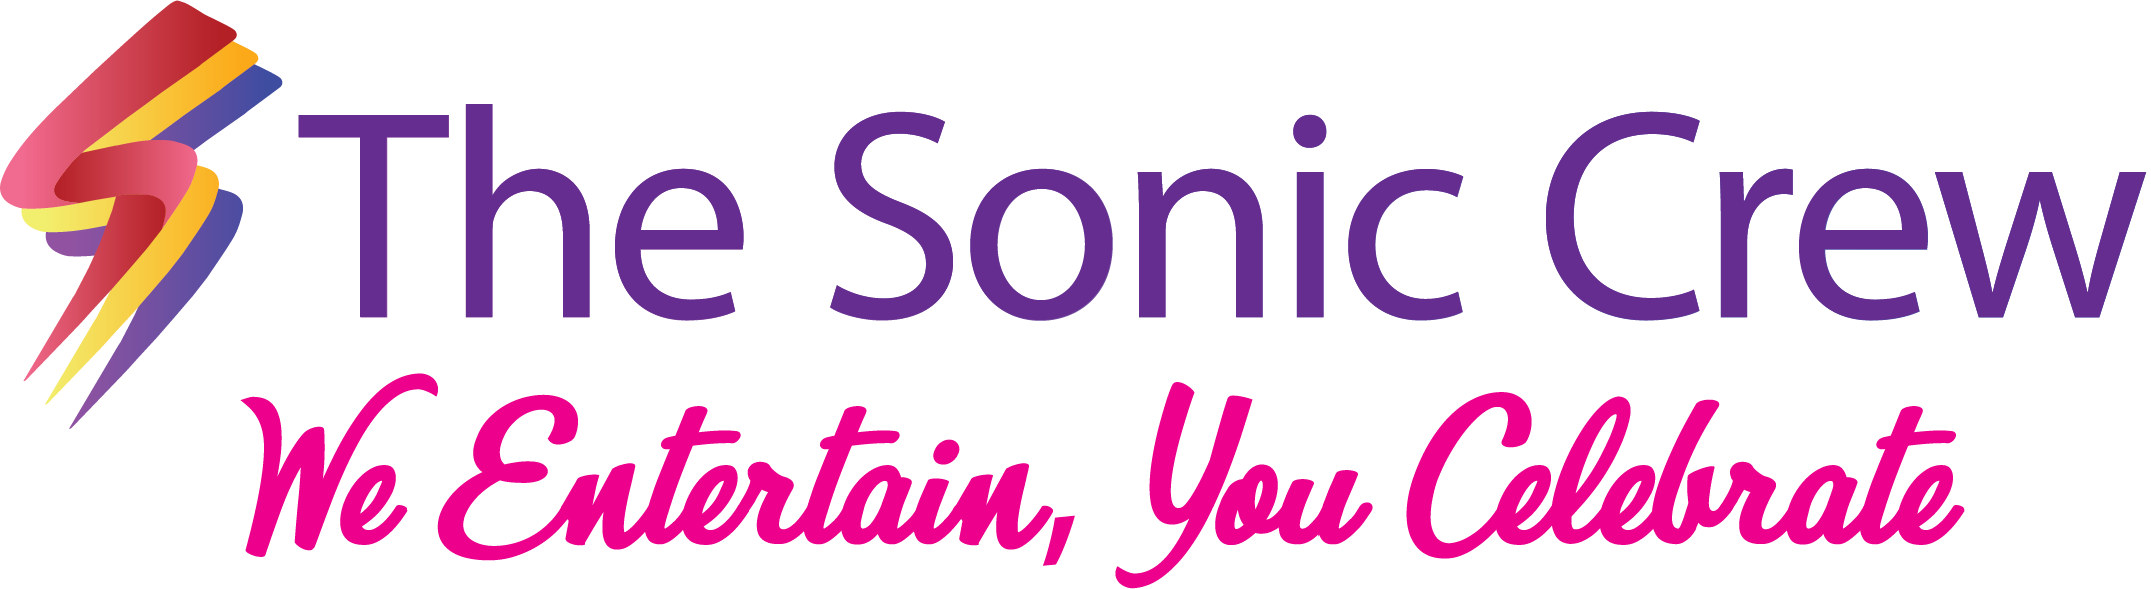 The Sonic Crew Logo with tagline : We entertain, you celebrate